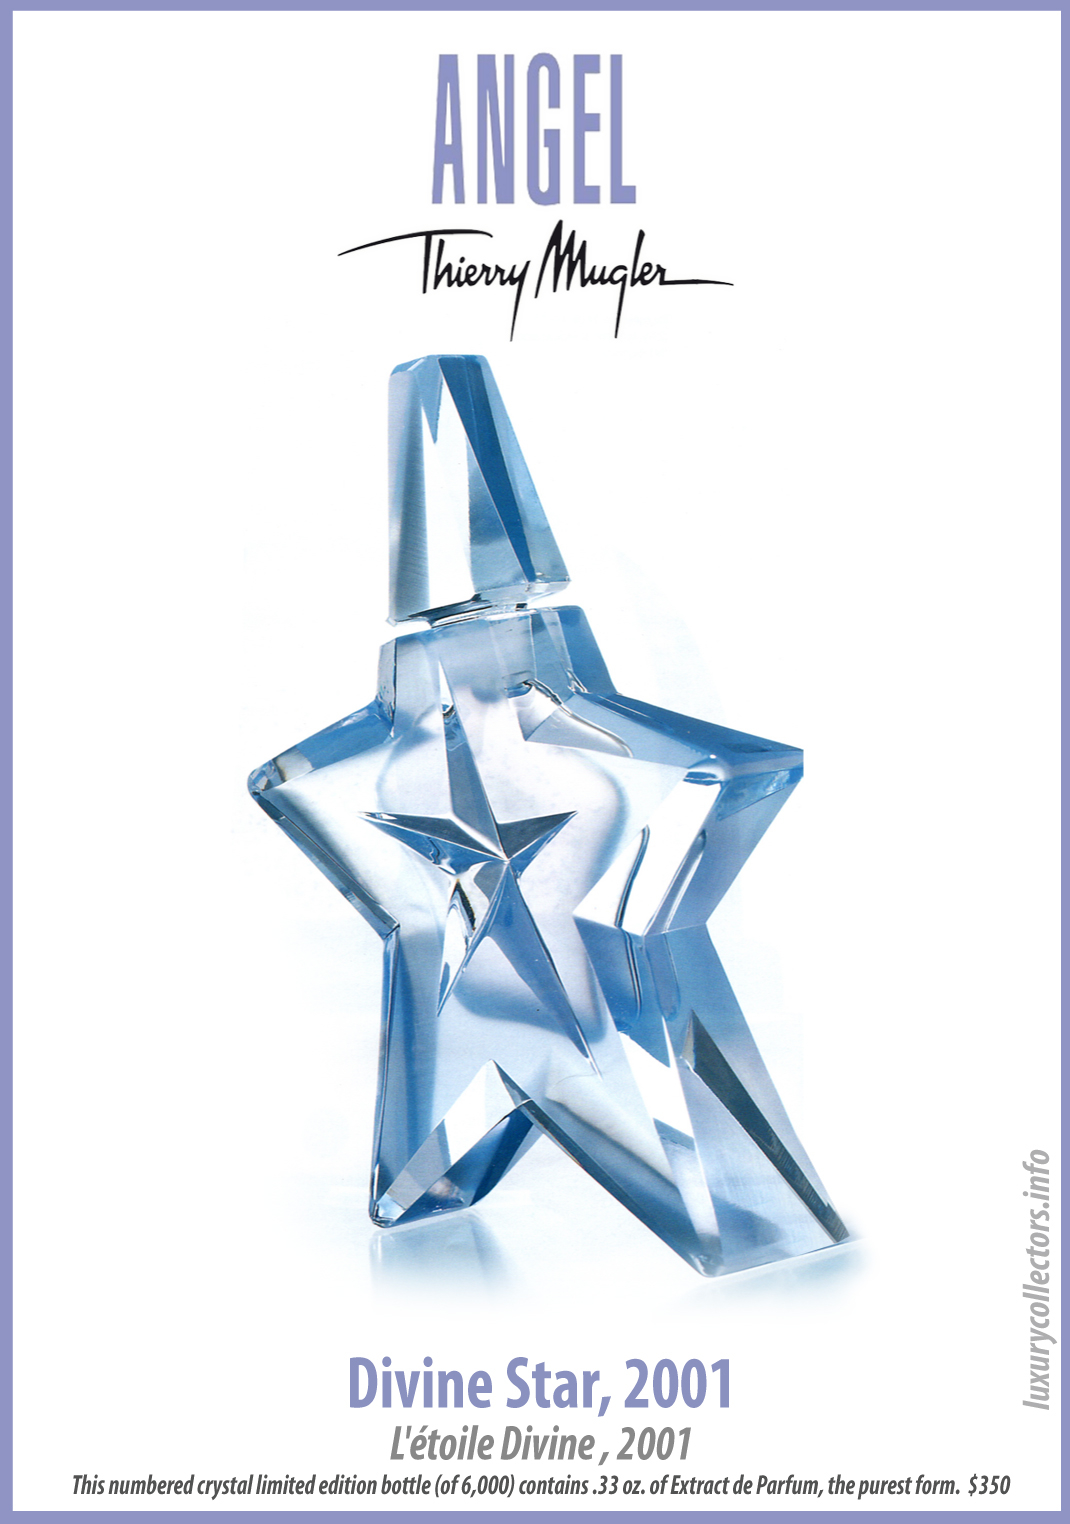 Thierry Mugler Angel Perfume Collector's Limited Edition Bottle 2001 Divine Star